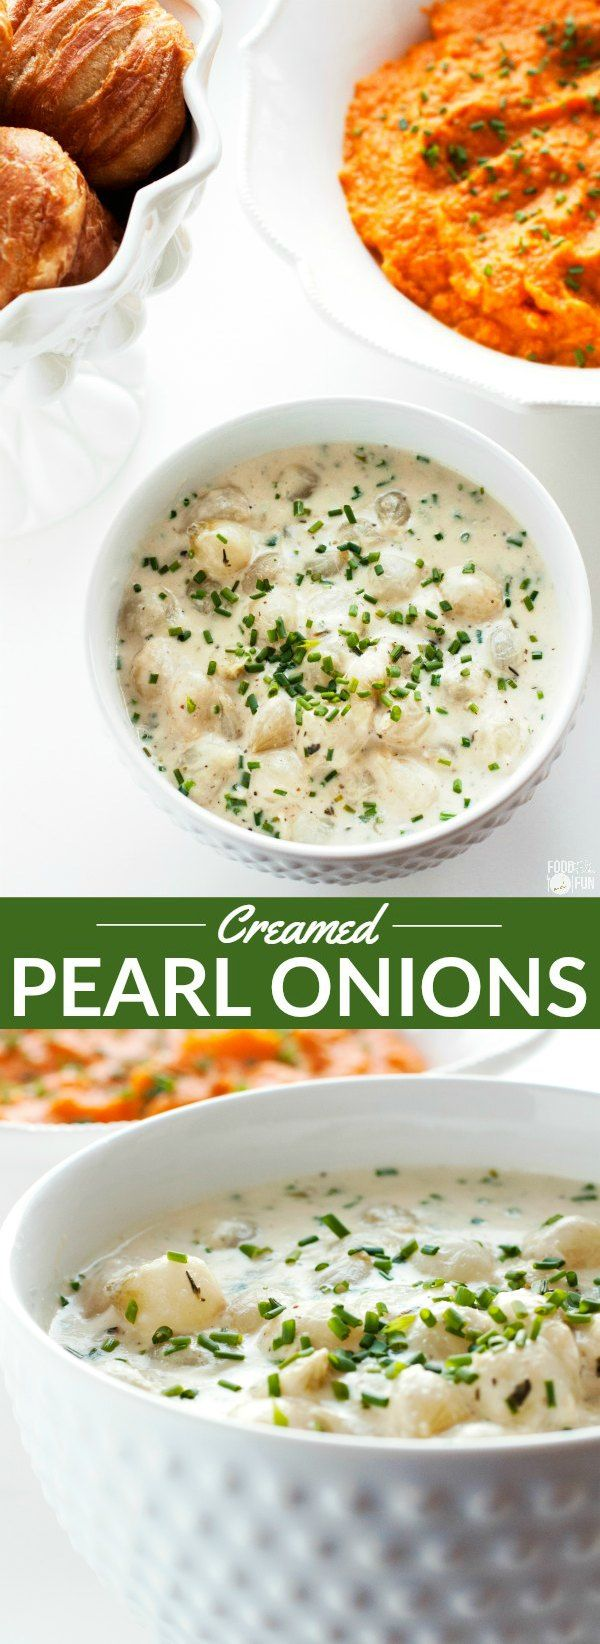 These flavorful Creamed Pearl Onions are simmered in a silky cream sauce with a touch of nutmeg, bright chives, and a squeeze of lemon. They're the perfect side dish for Spring or Easter dinner!   Easter Recipe   Spring Recipe   Easter Side Dish